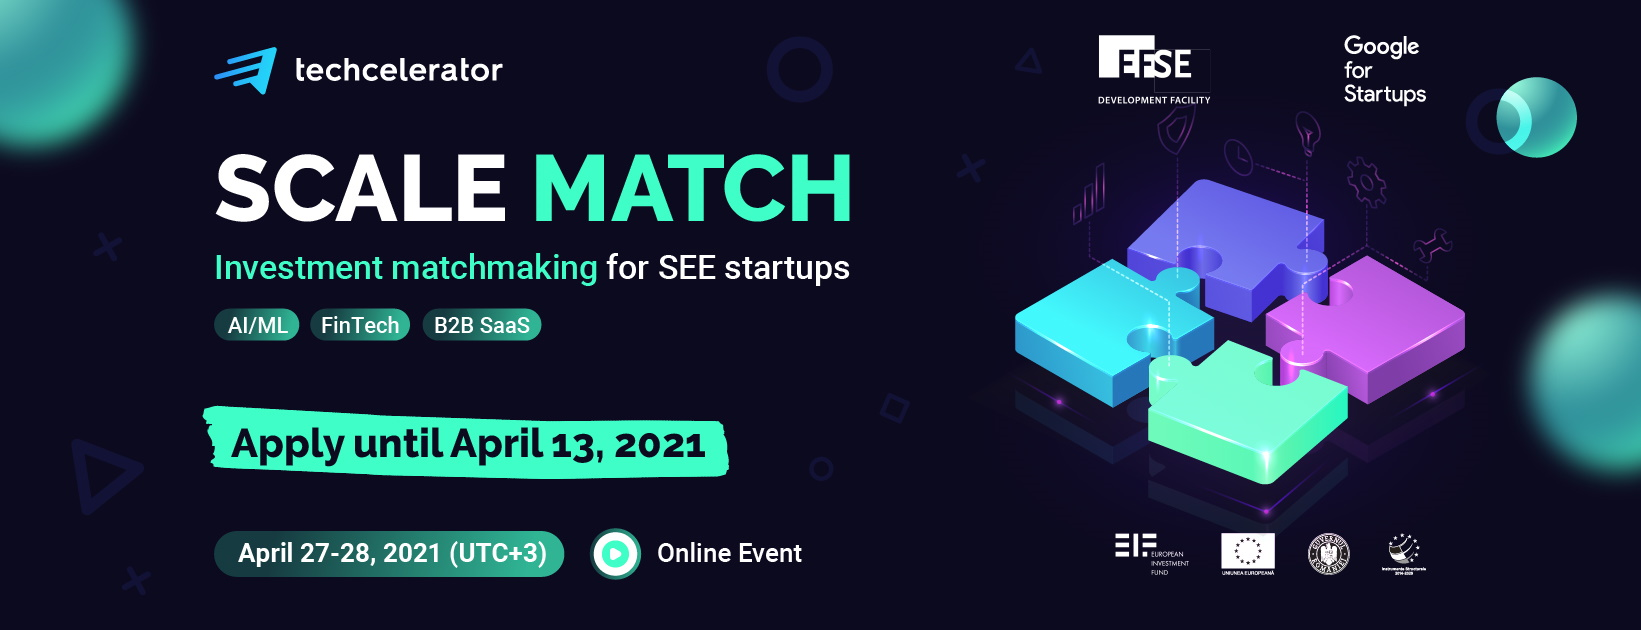 Techcelerator expands in SEE by launching Scale Match, the first regional matchathon